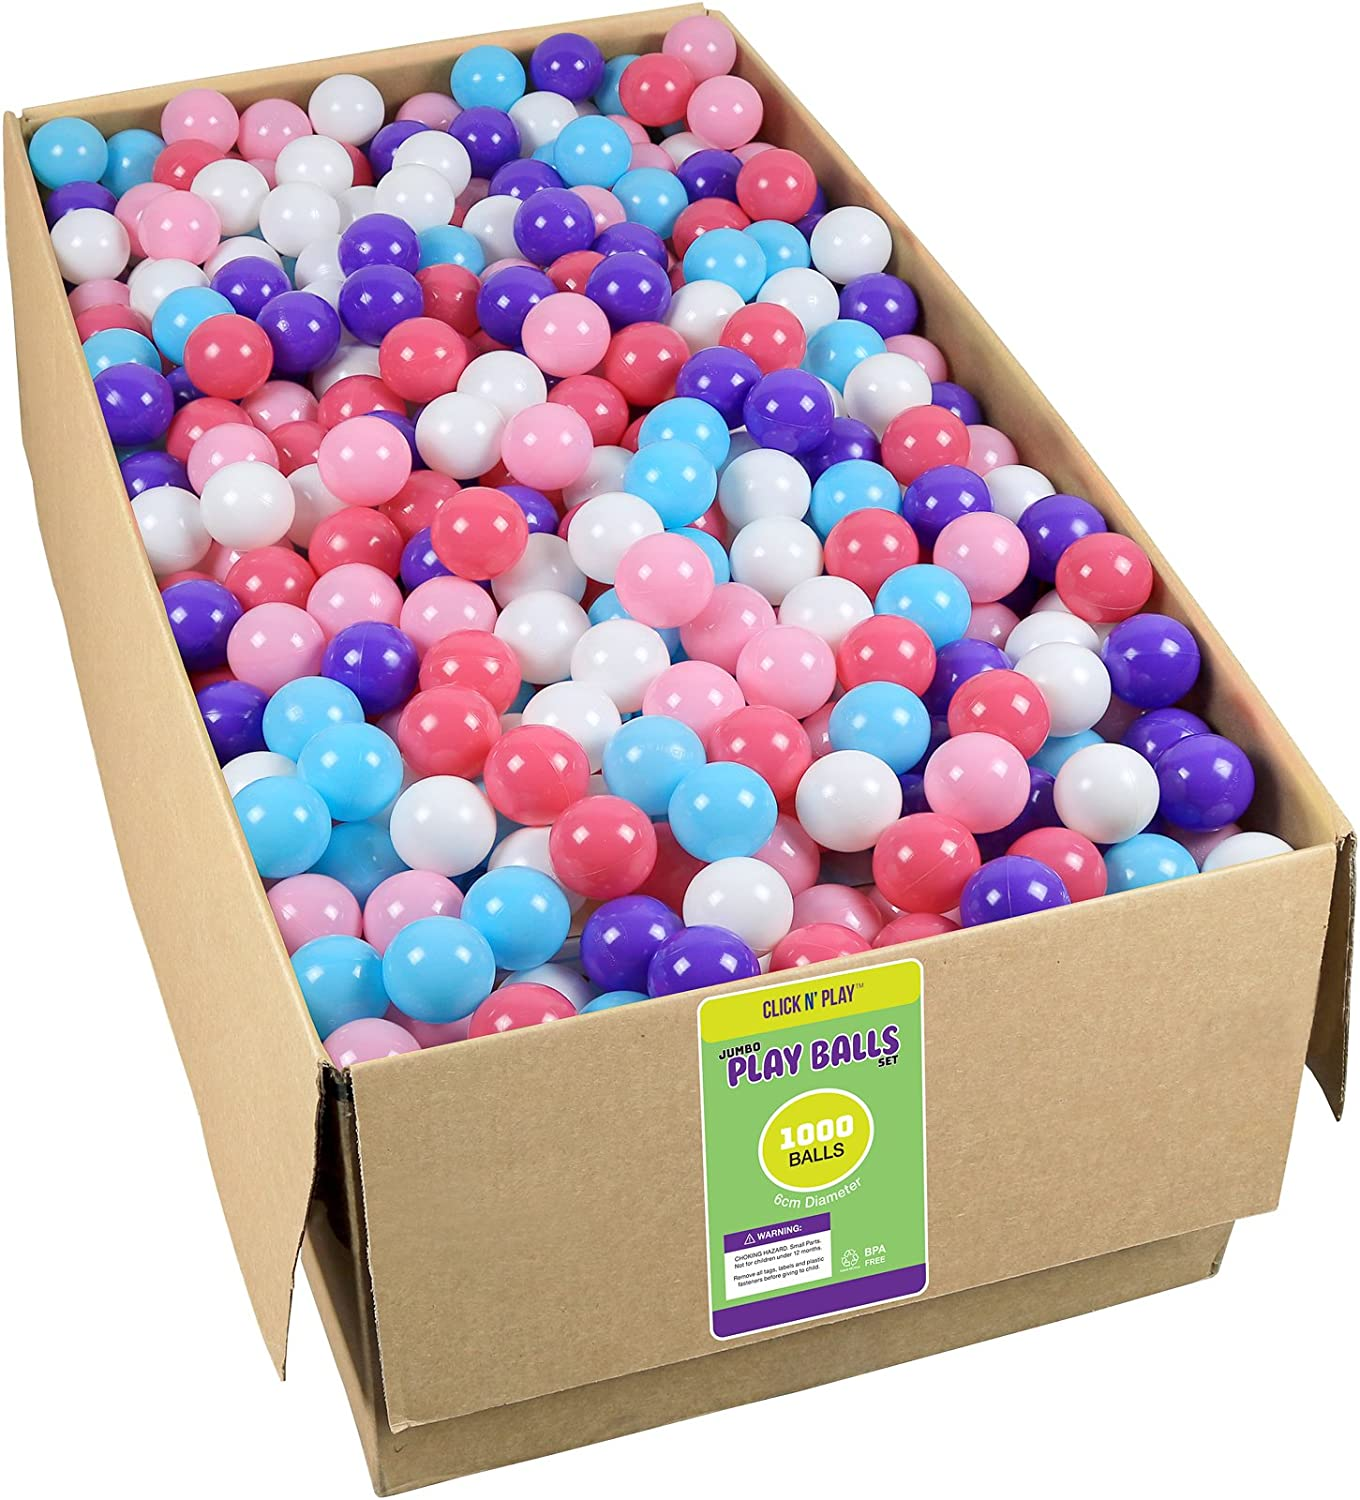 Click N' Play Pack of 100 Phthalate Free BPA Free Crush Proof Plastic Ball, Pit Balls - 6 Bright Colors in Reusable and Durable Storage Mesh Bag with Zipper Homeco CNP0005A